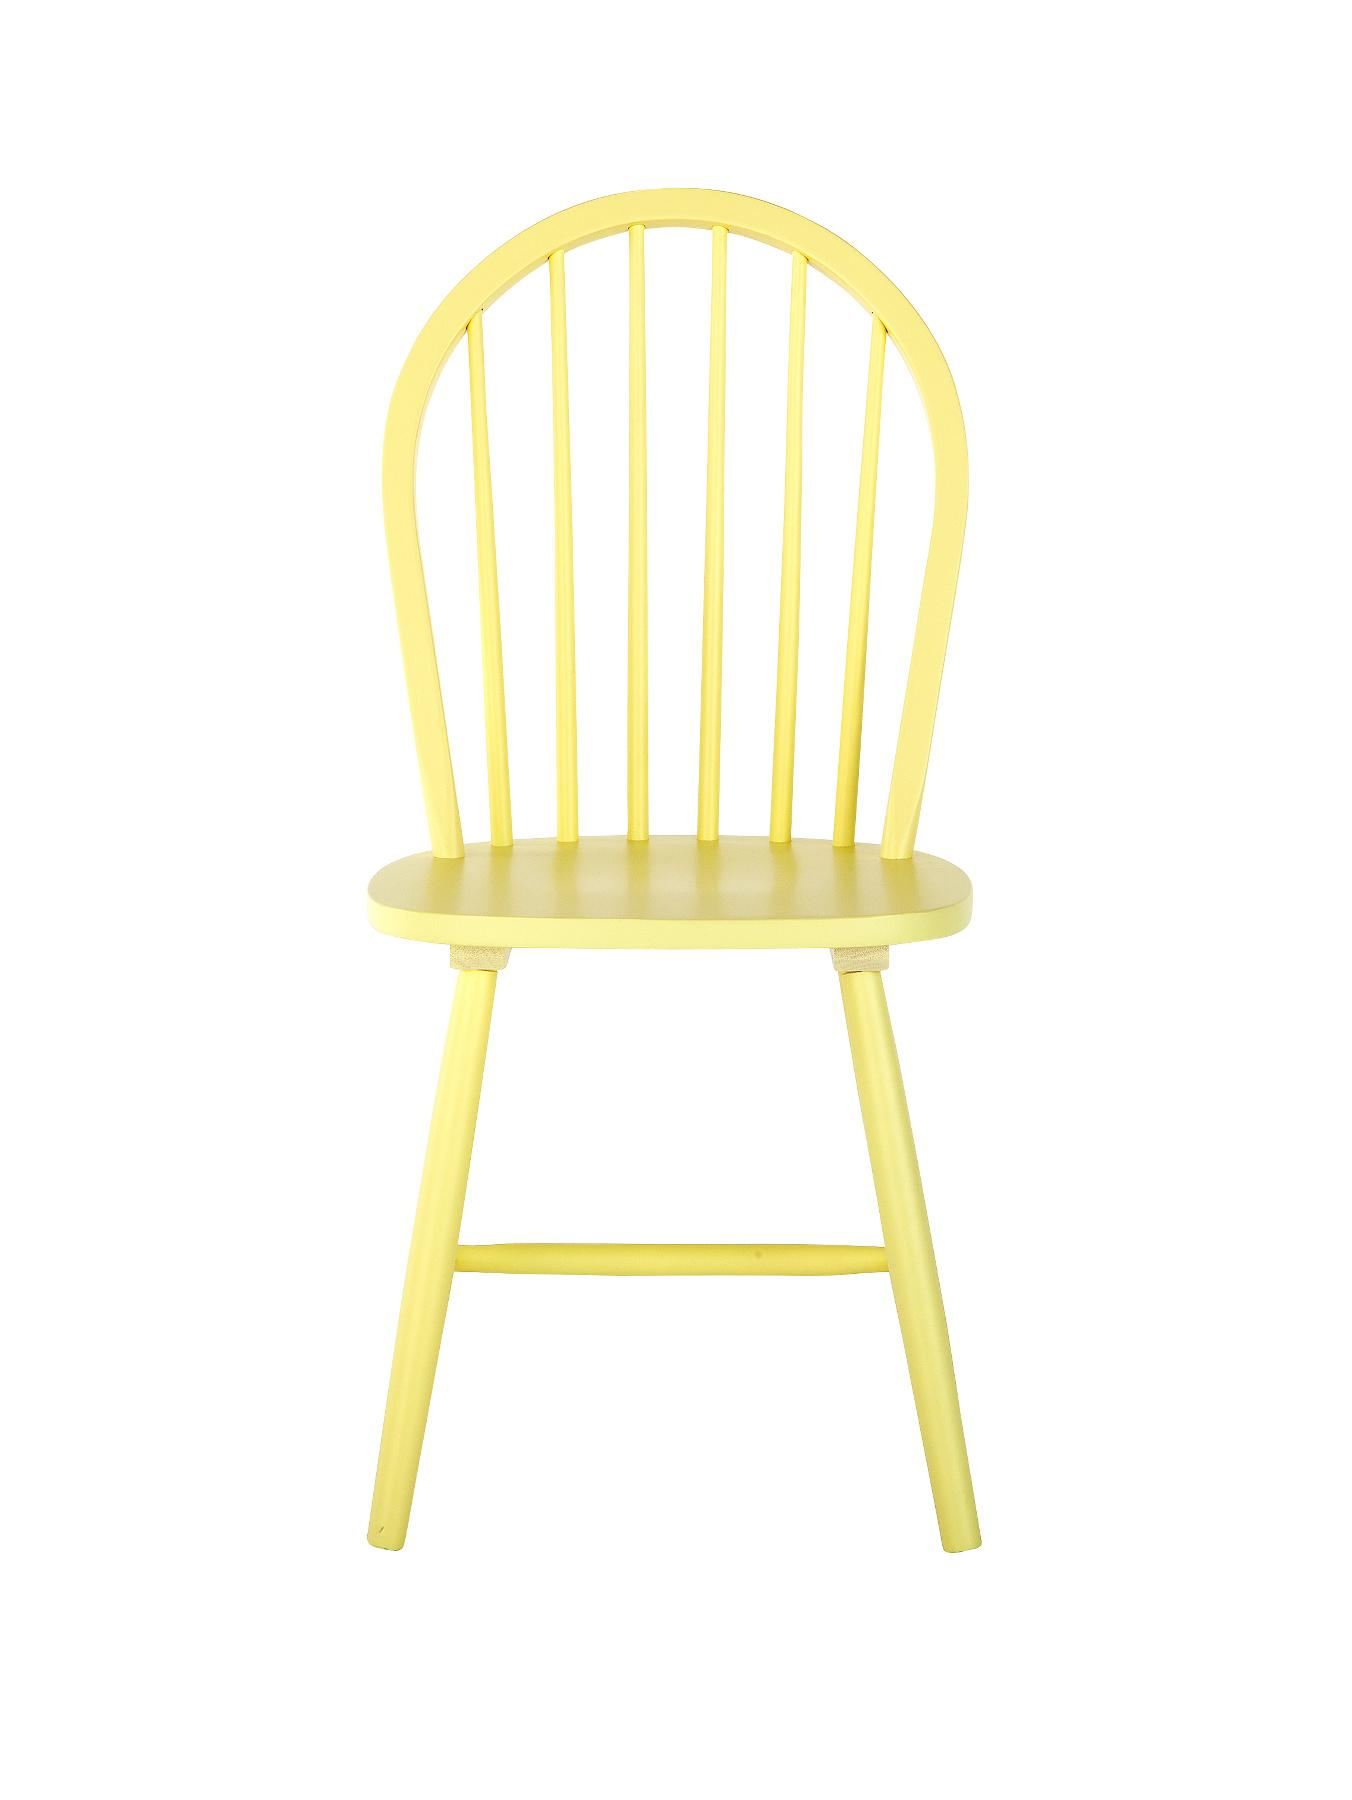 Daisy Chair - Yellow - Yellow, Yellow